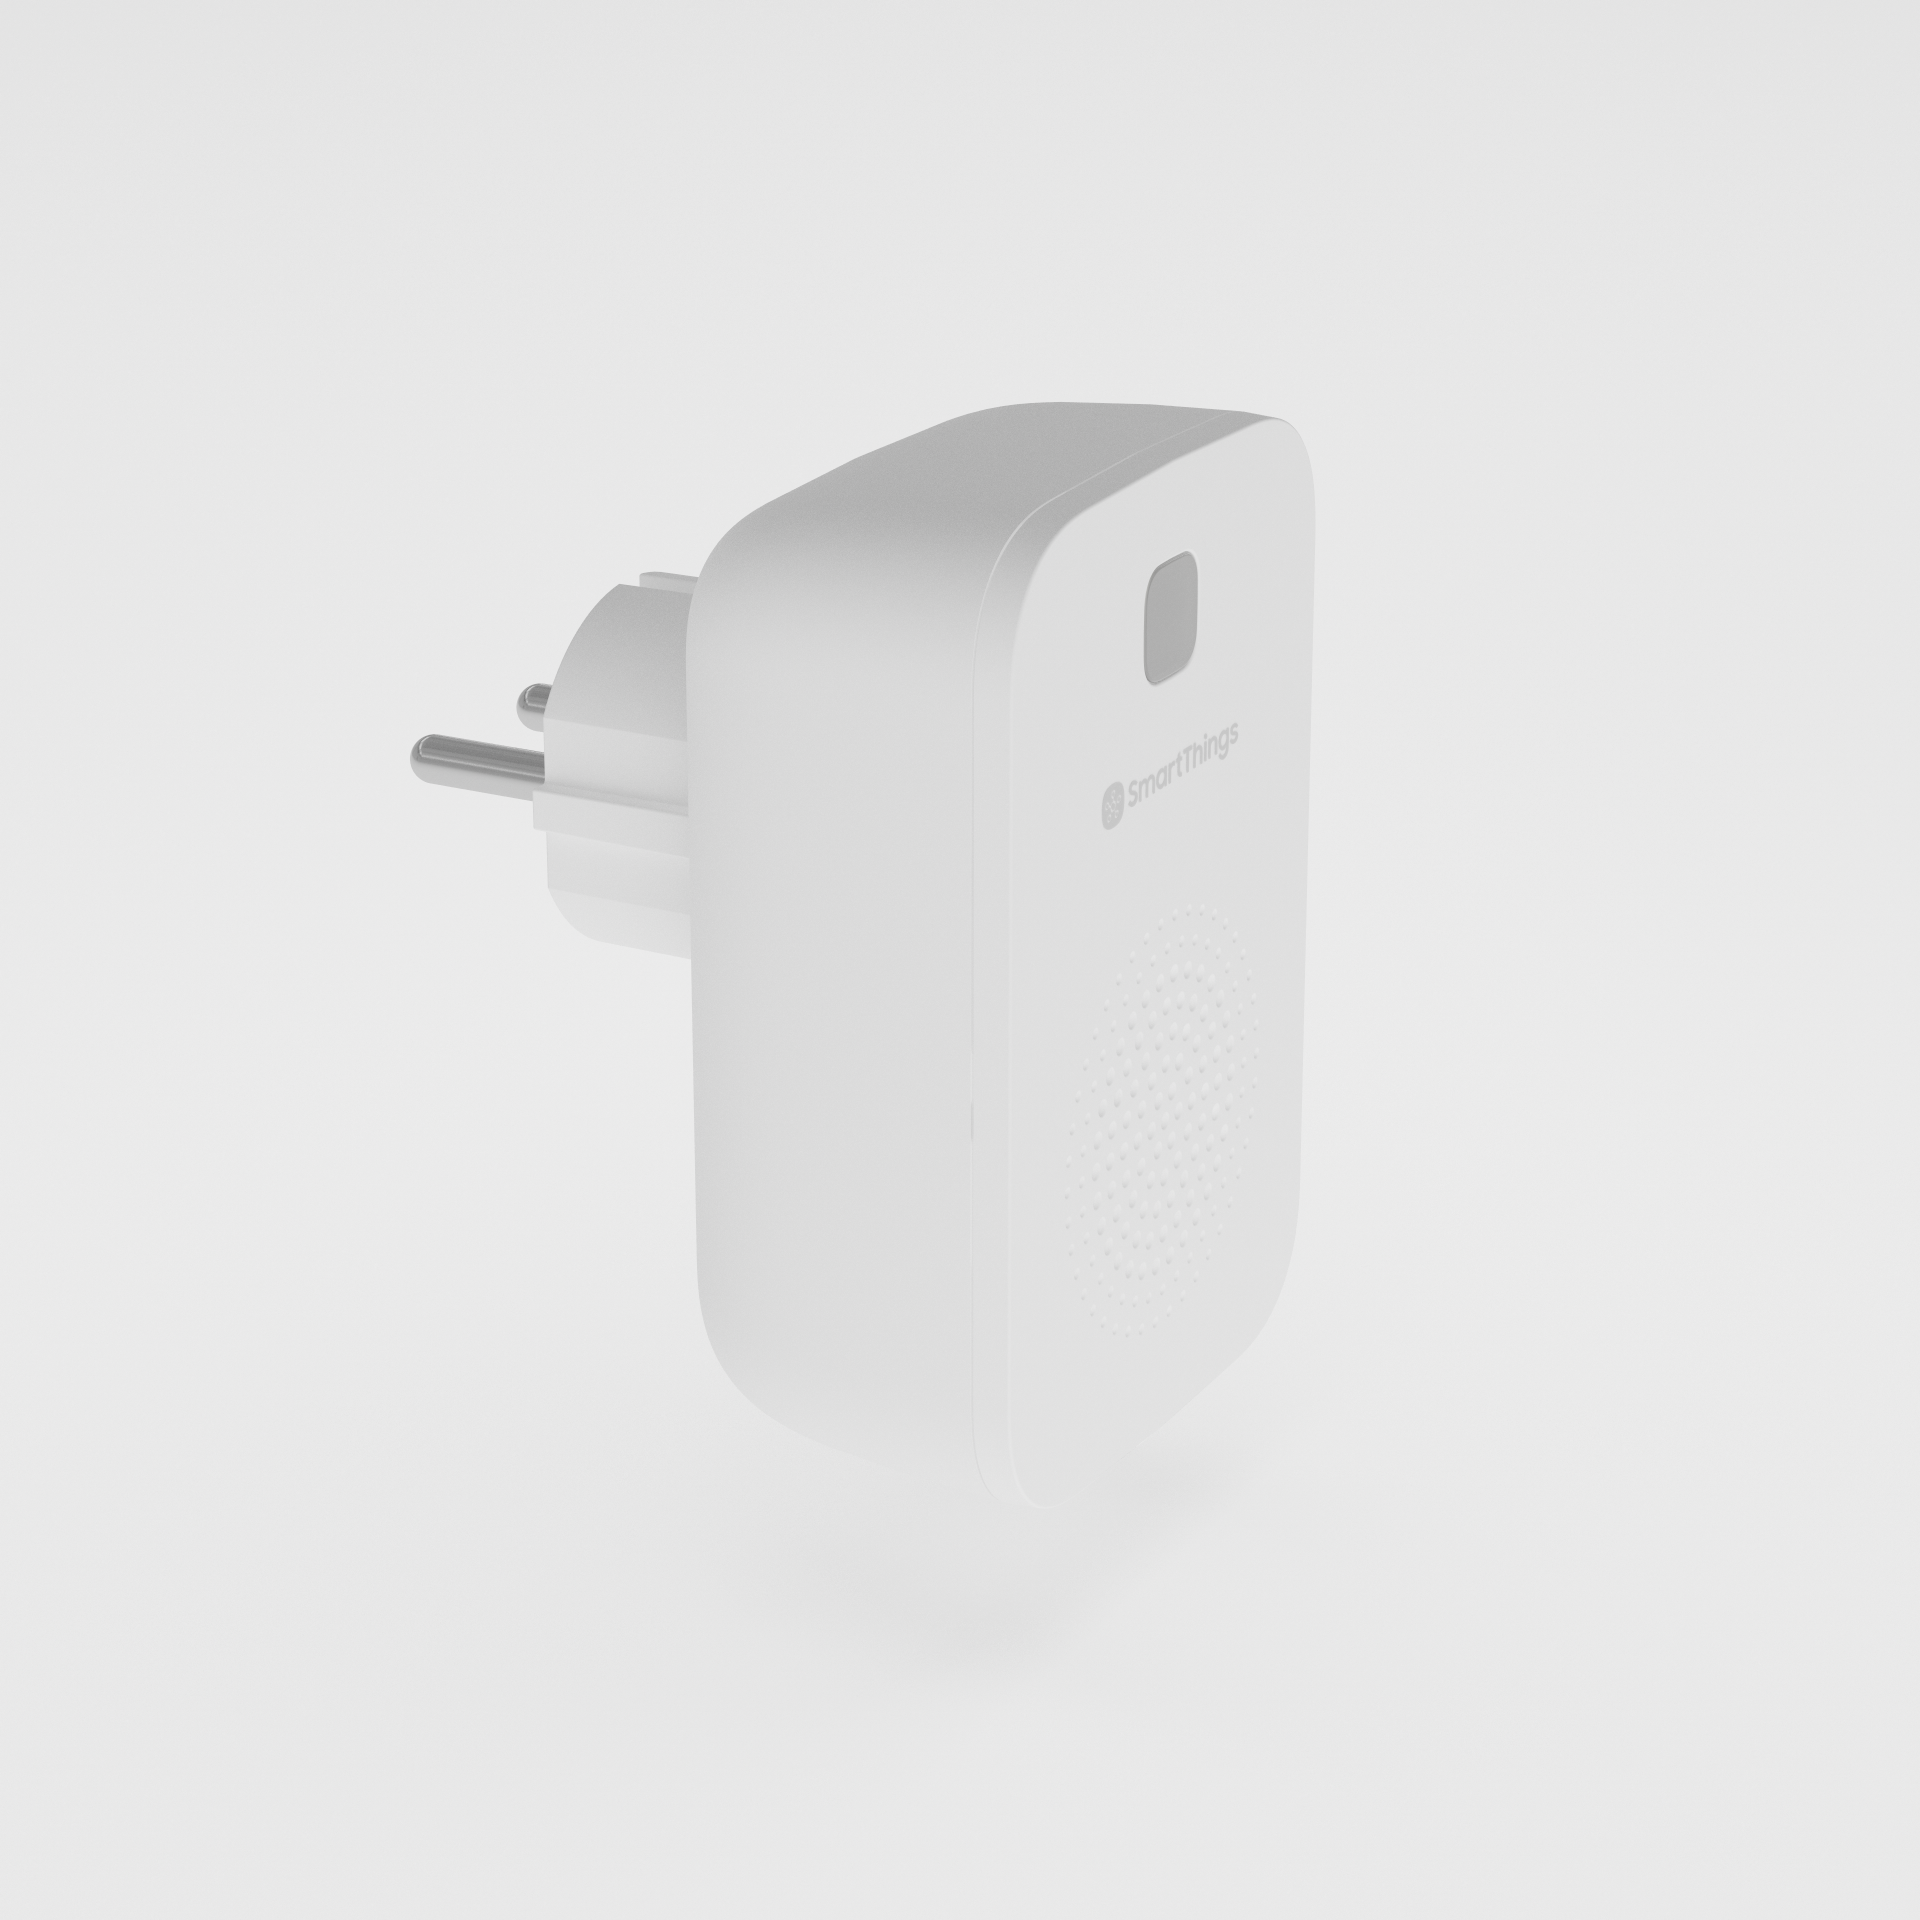 3d siren for samsung smartthings with cinema4d